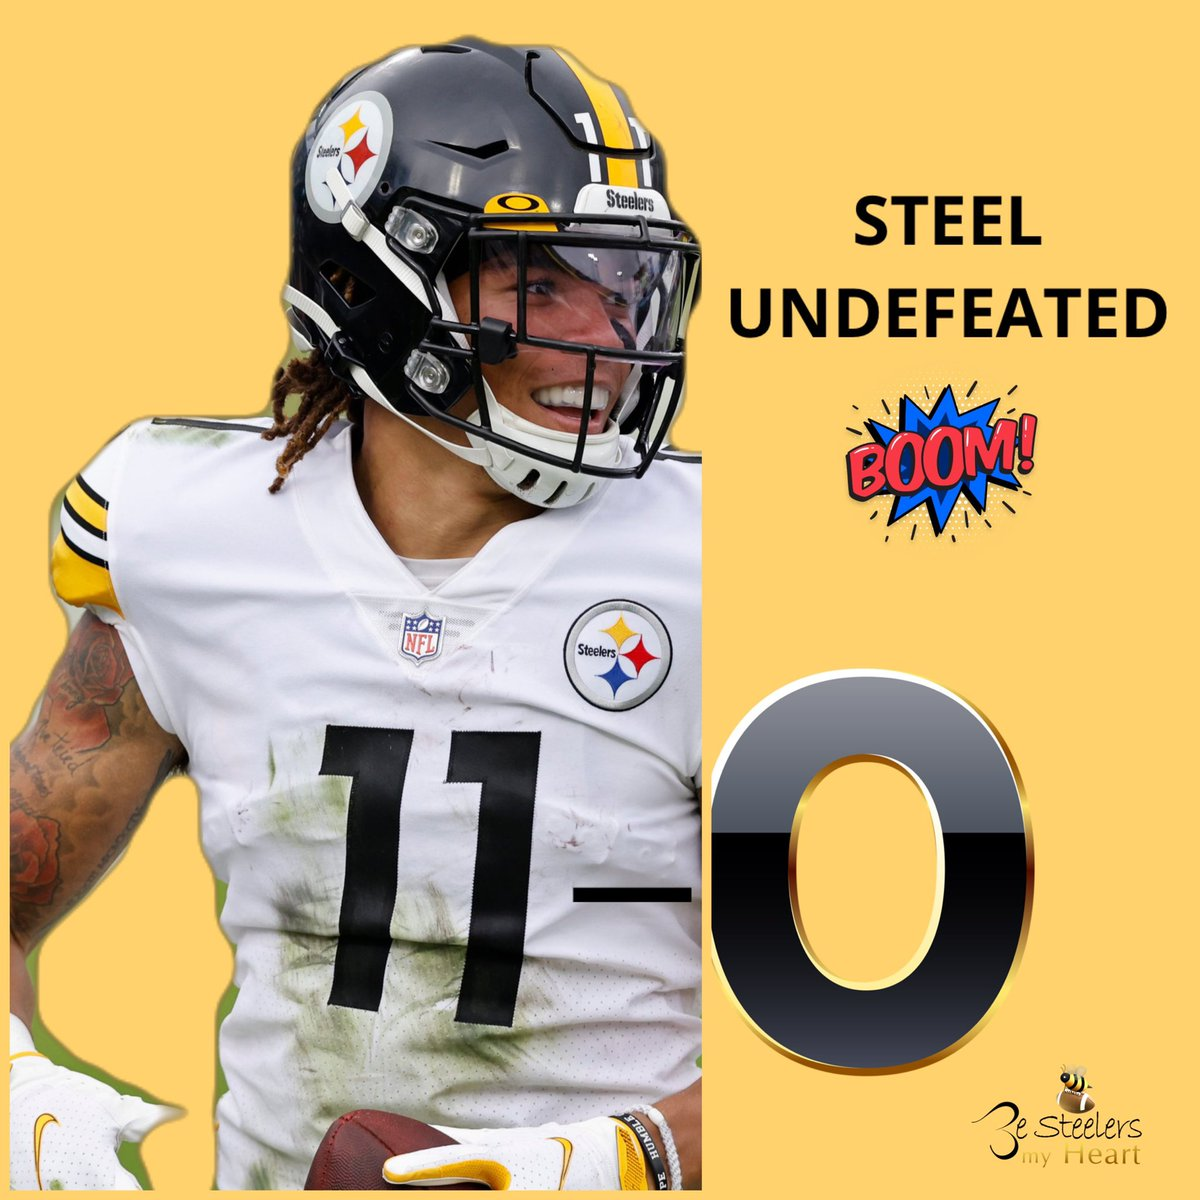 H E L L O 🤣 We Steel Undefeated 👏🏾 Congrats STEELERS‼️-⭕️ #HereWeGo #Steelers .@ChaseClaypool